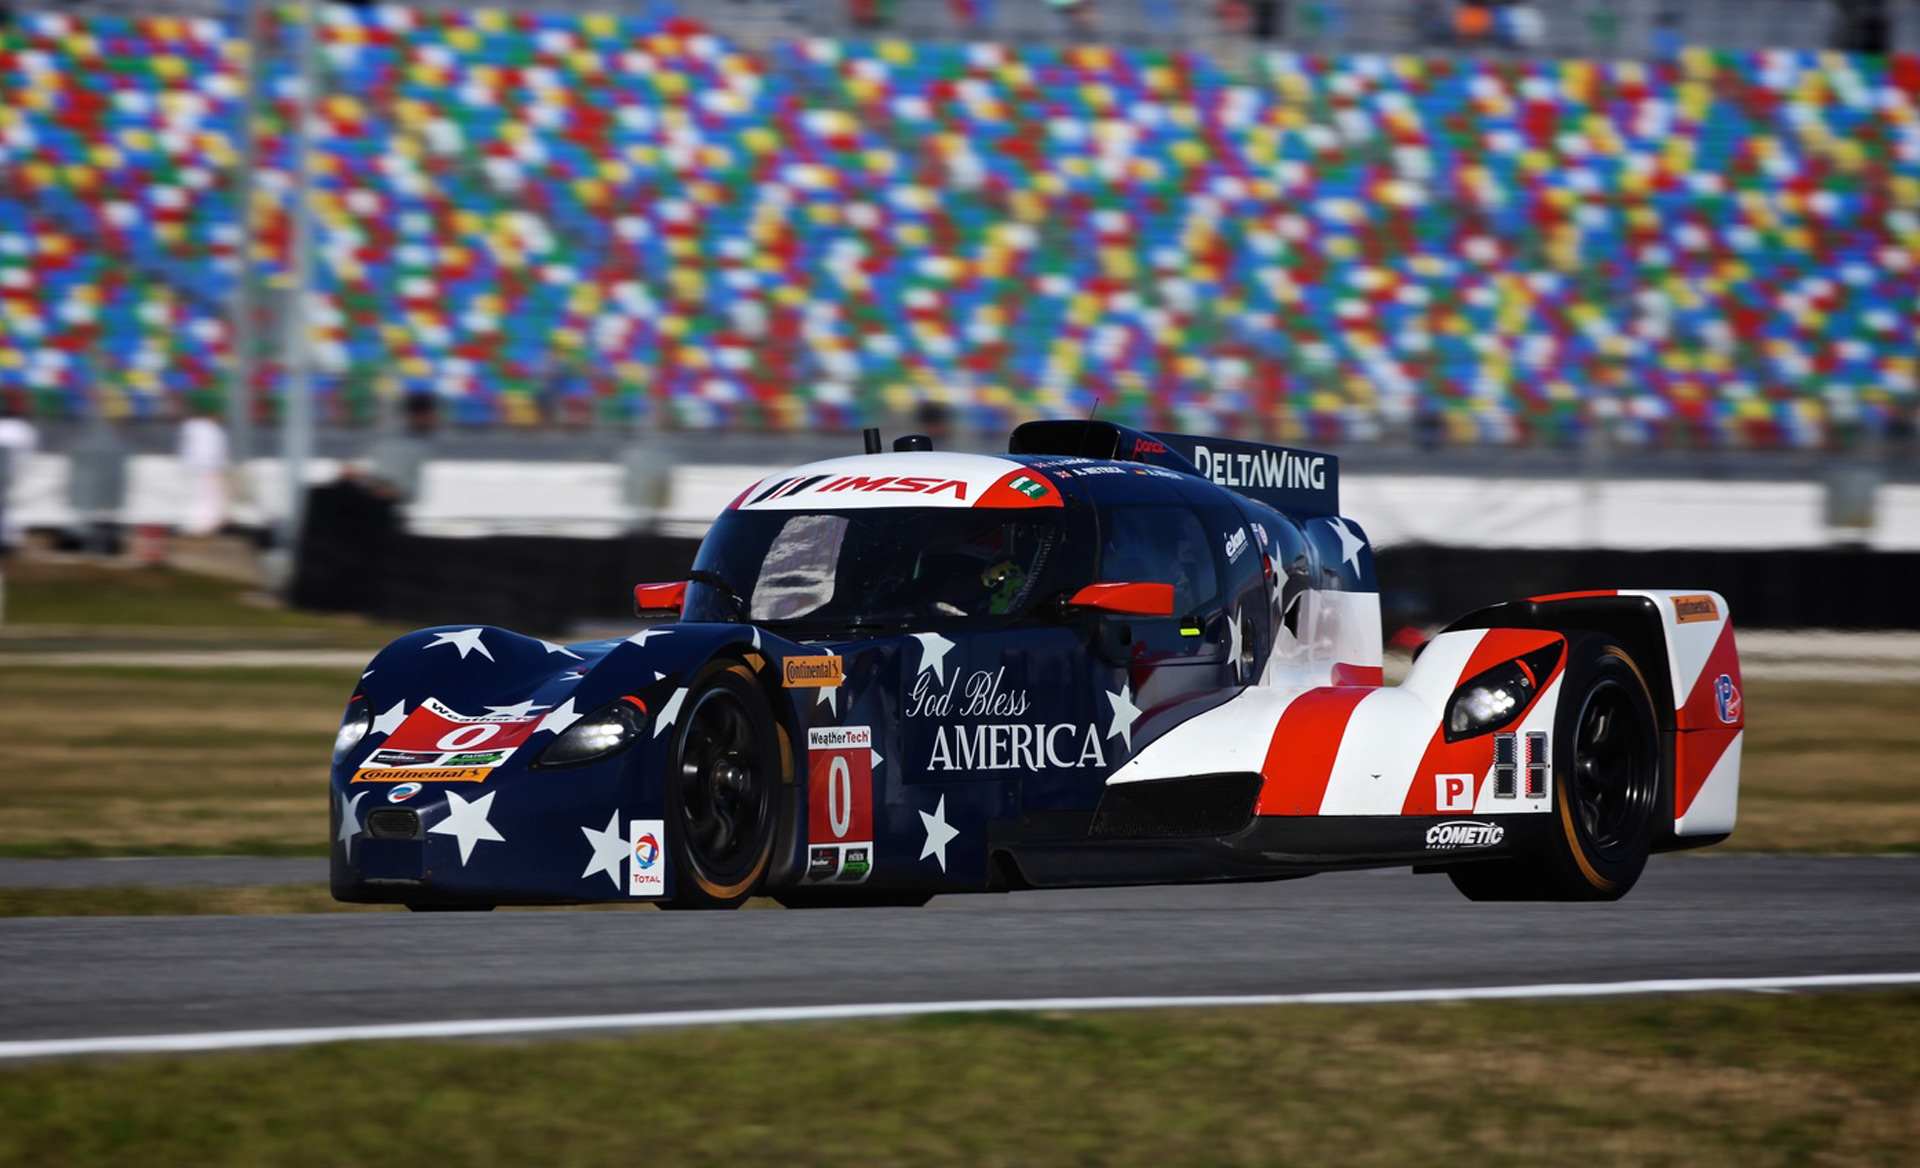 After Successful Start, DeltaWing Suffers Crash At 2016 Rolex 24 At ...